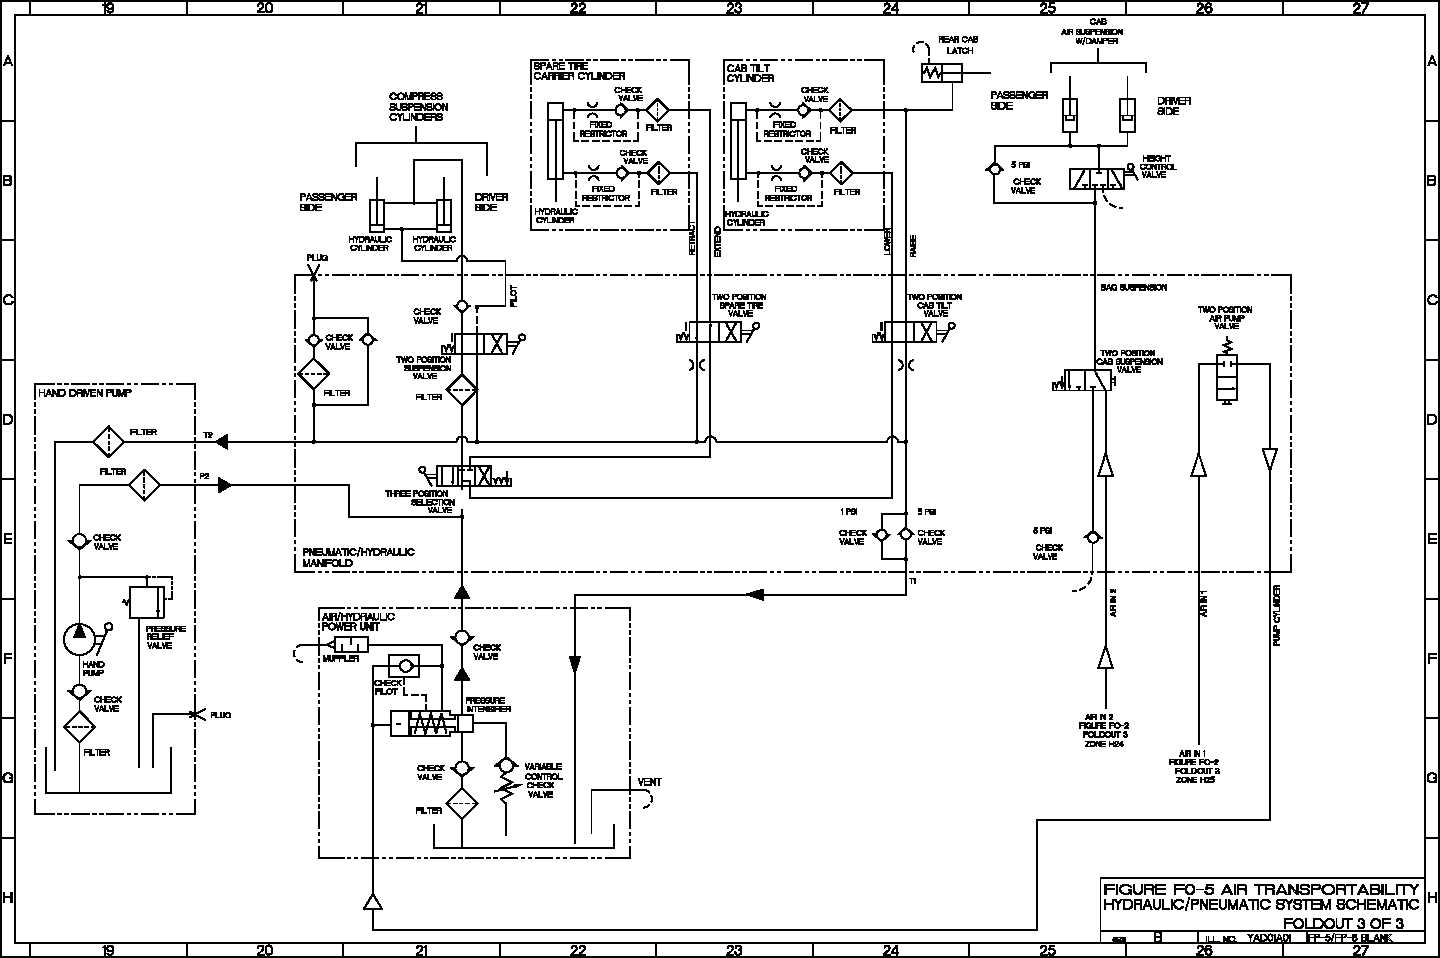 M Lmtv Wiring Schematic on